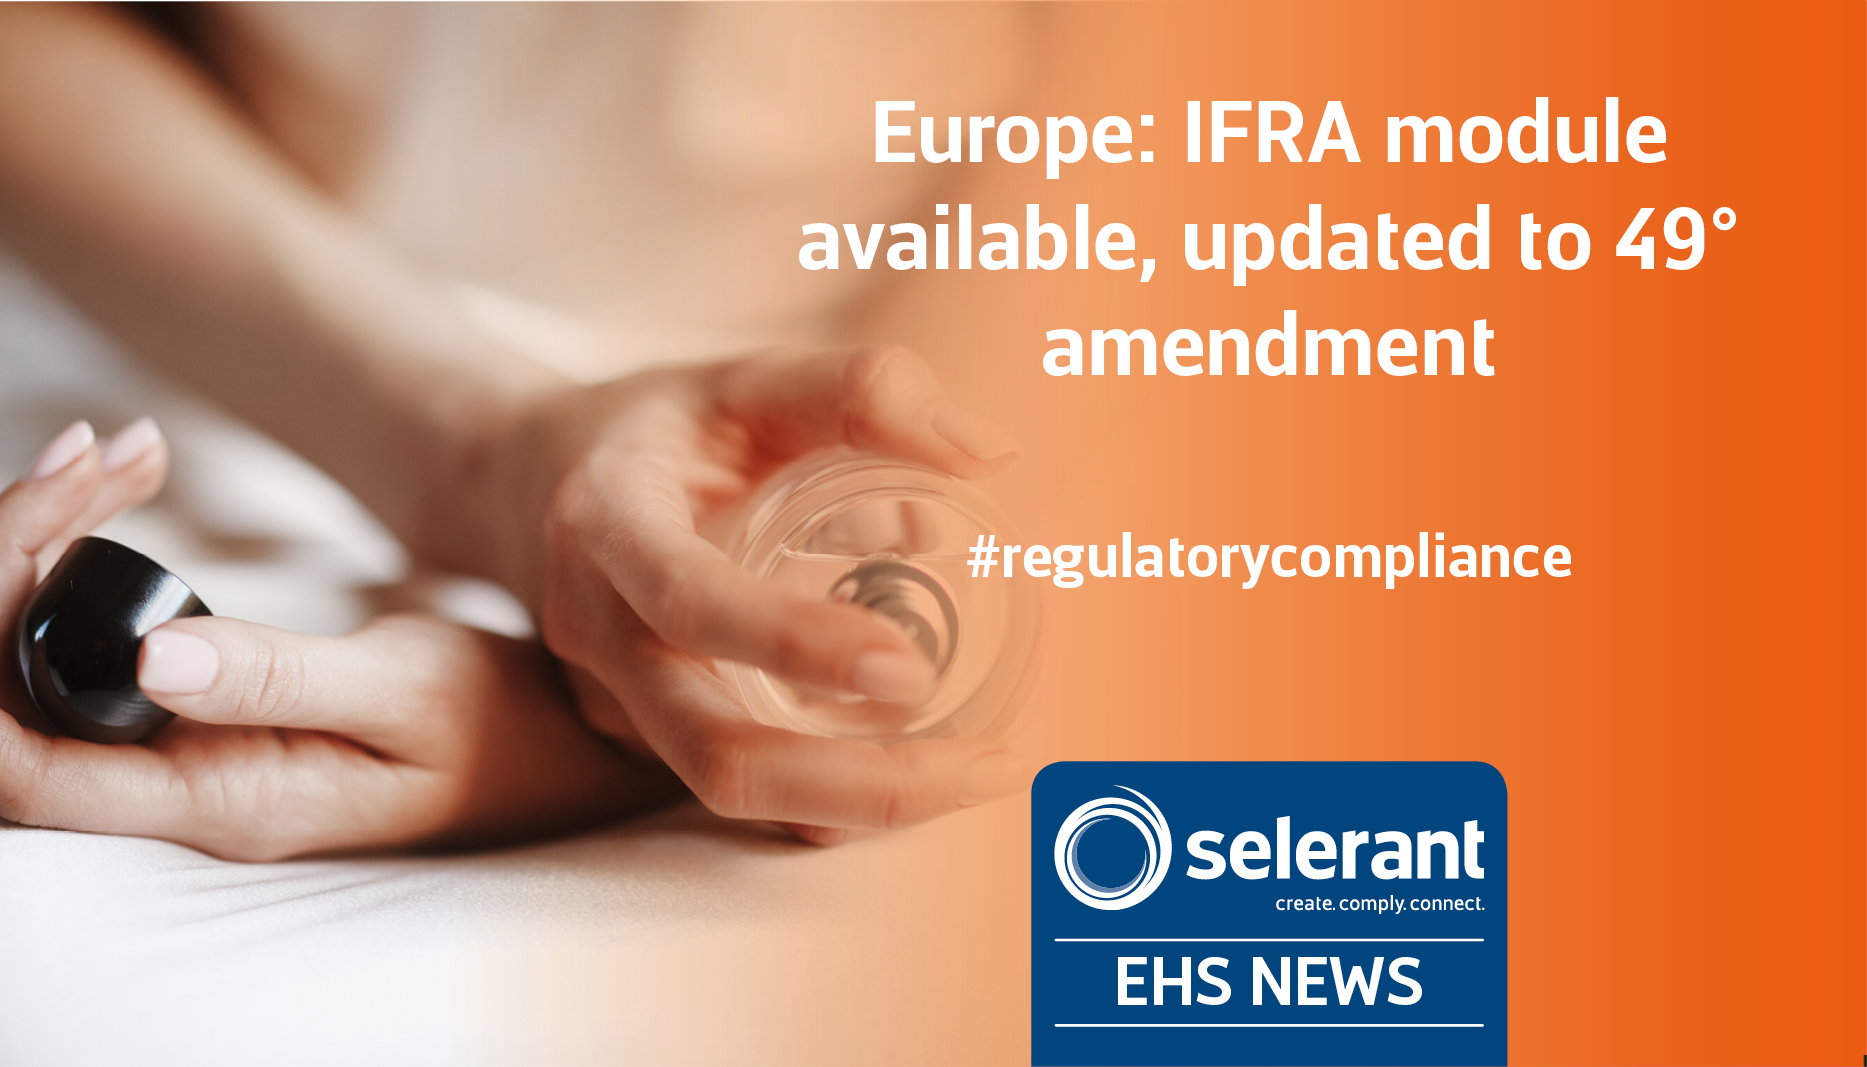 Europe: IFRA module available, updated to 49° amendment